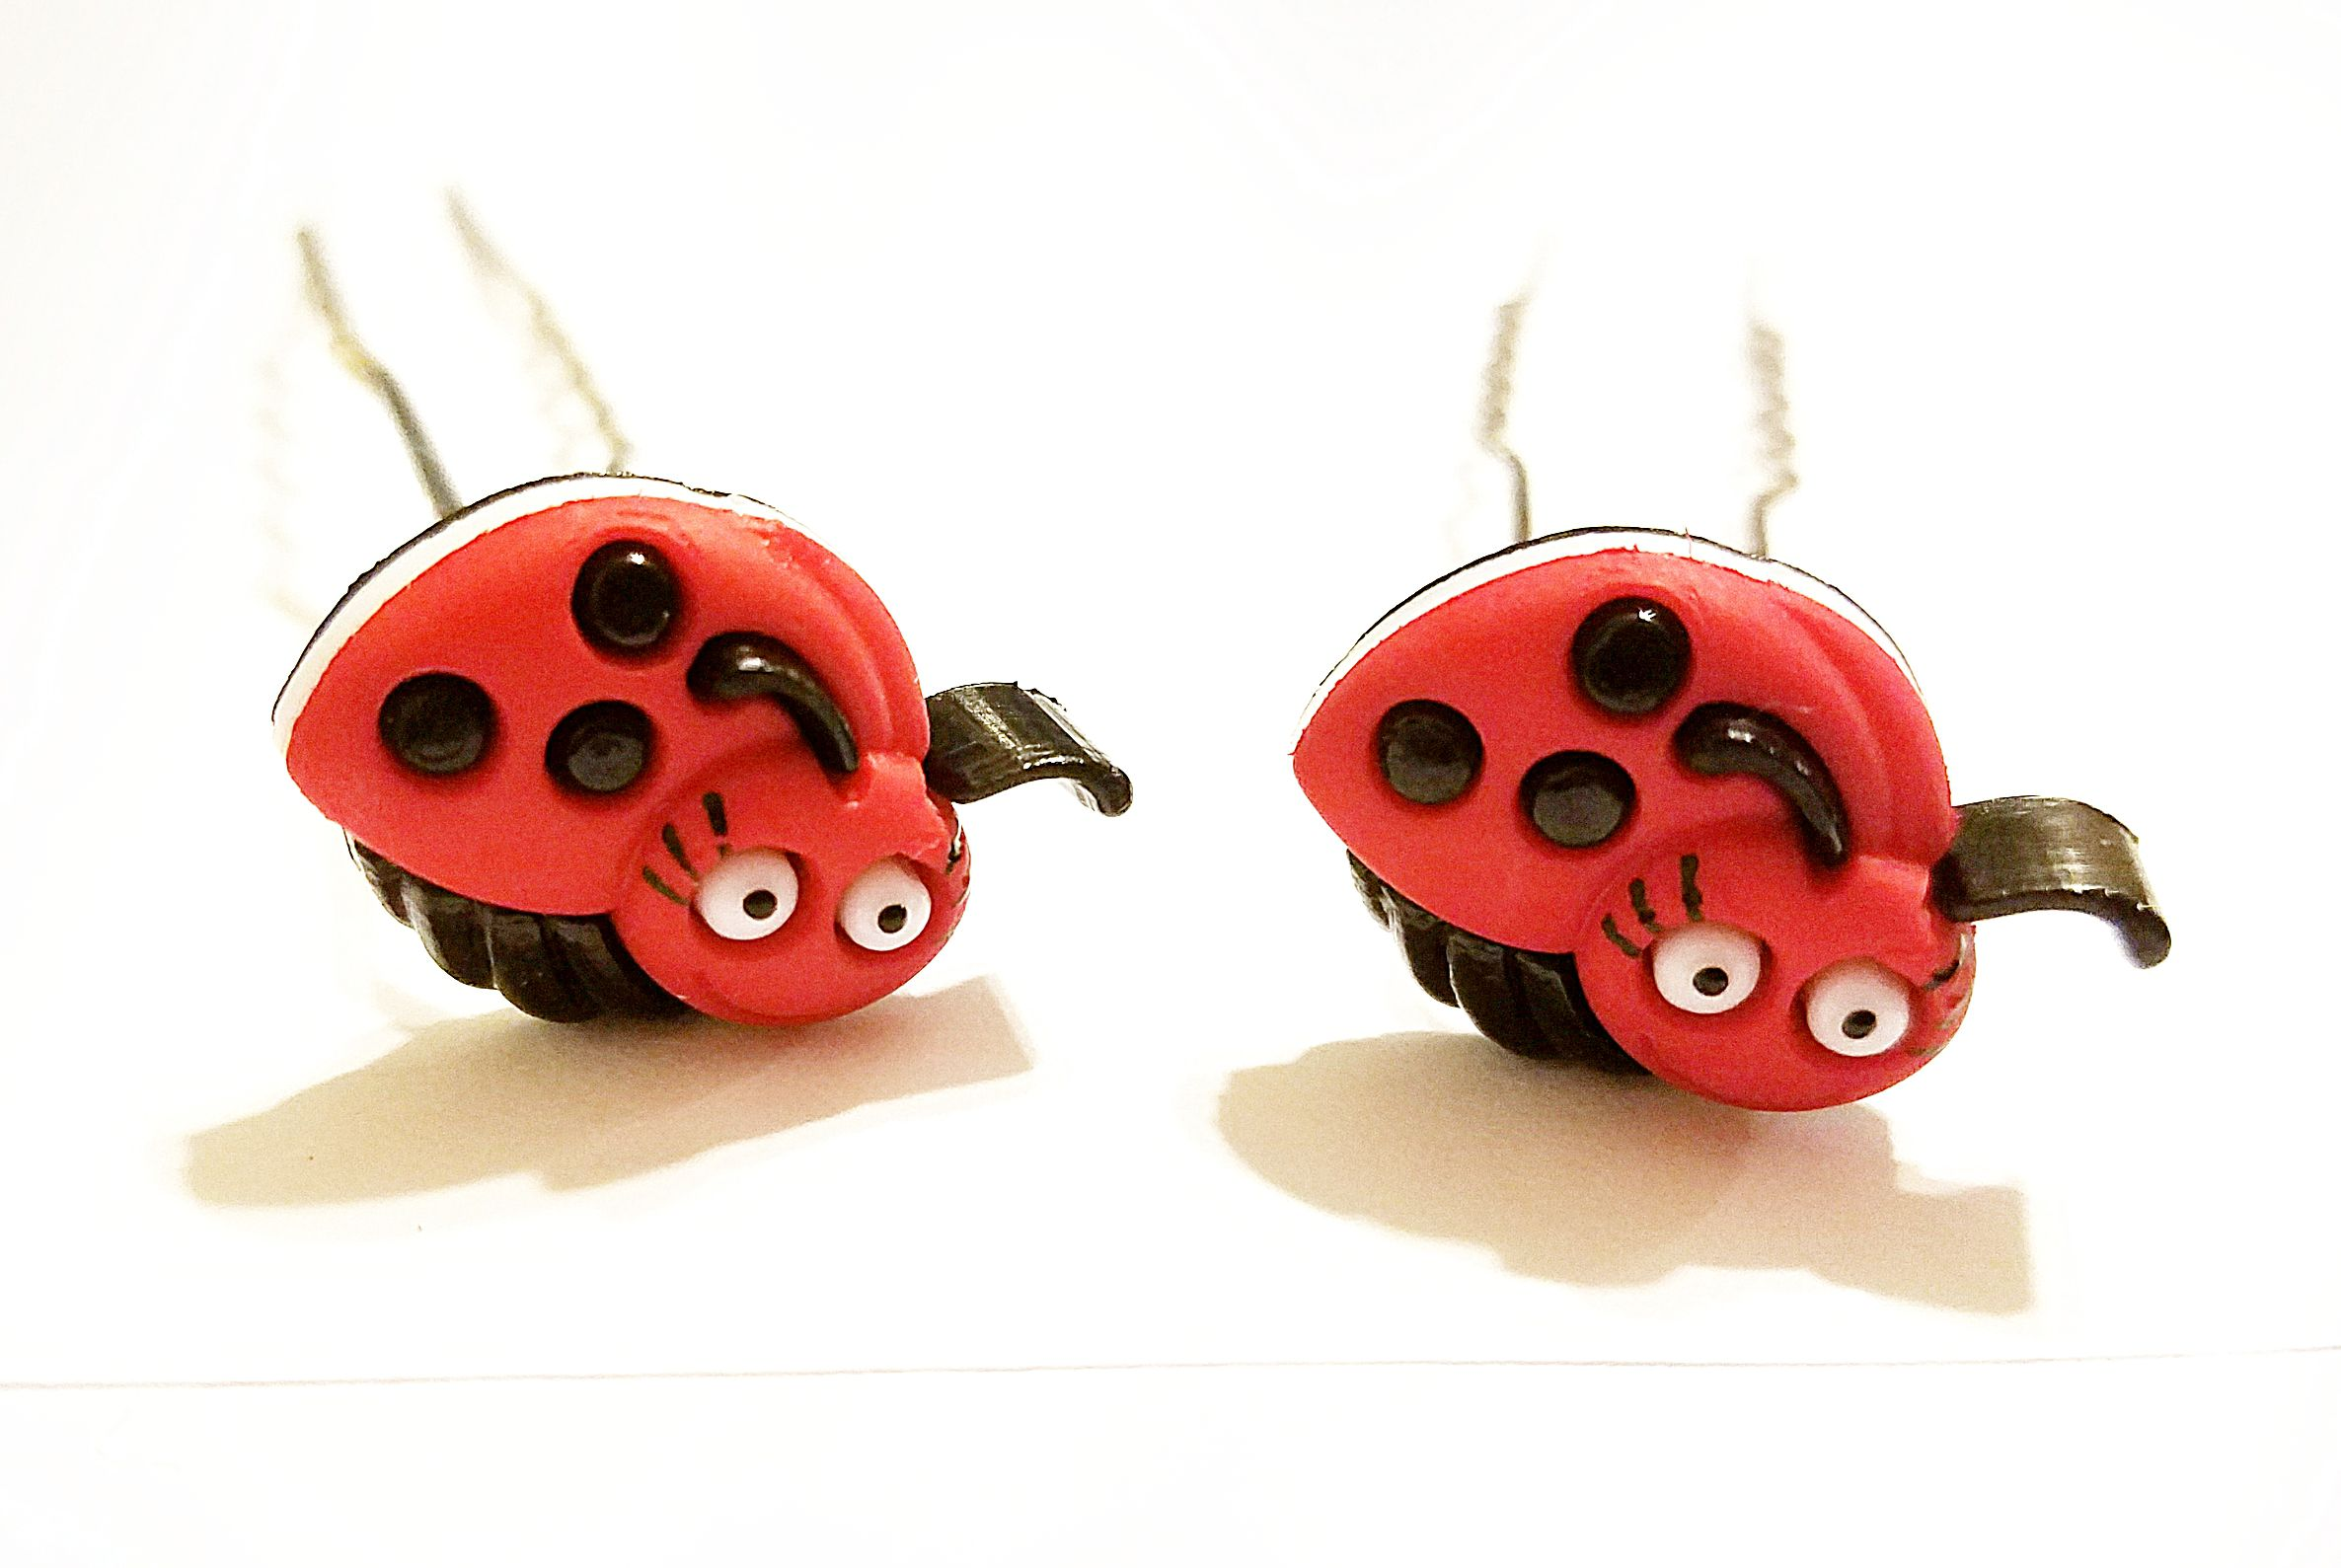 giftsforher uniquegifts kriszcreations laddybugs hairpin hairjewelry